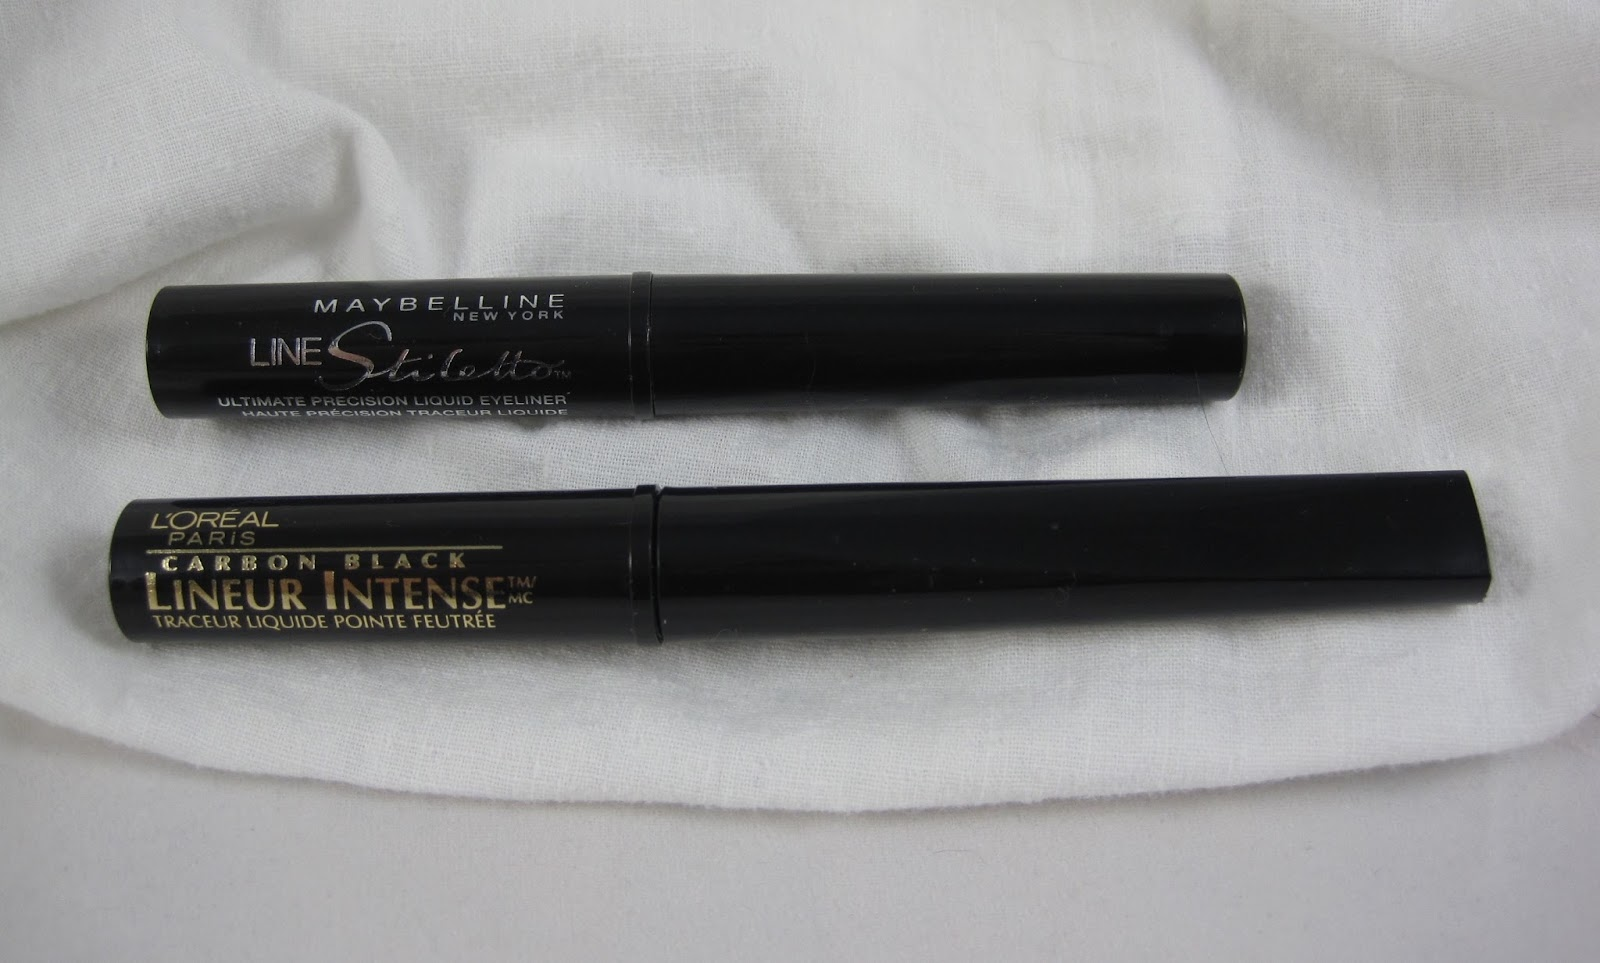 STYLISH BUN ✧: Review: L'Oreal Lineur Intense Liquid Eyeliner and ...